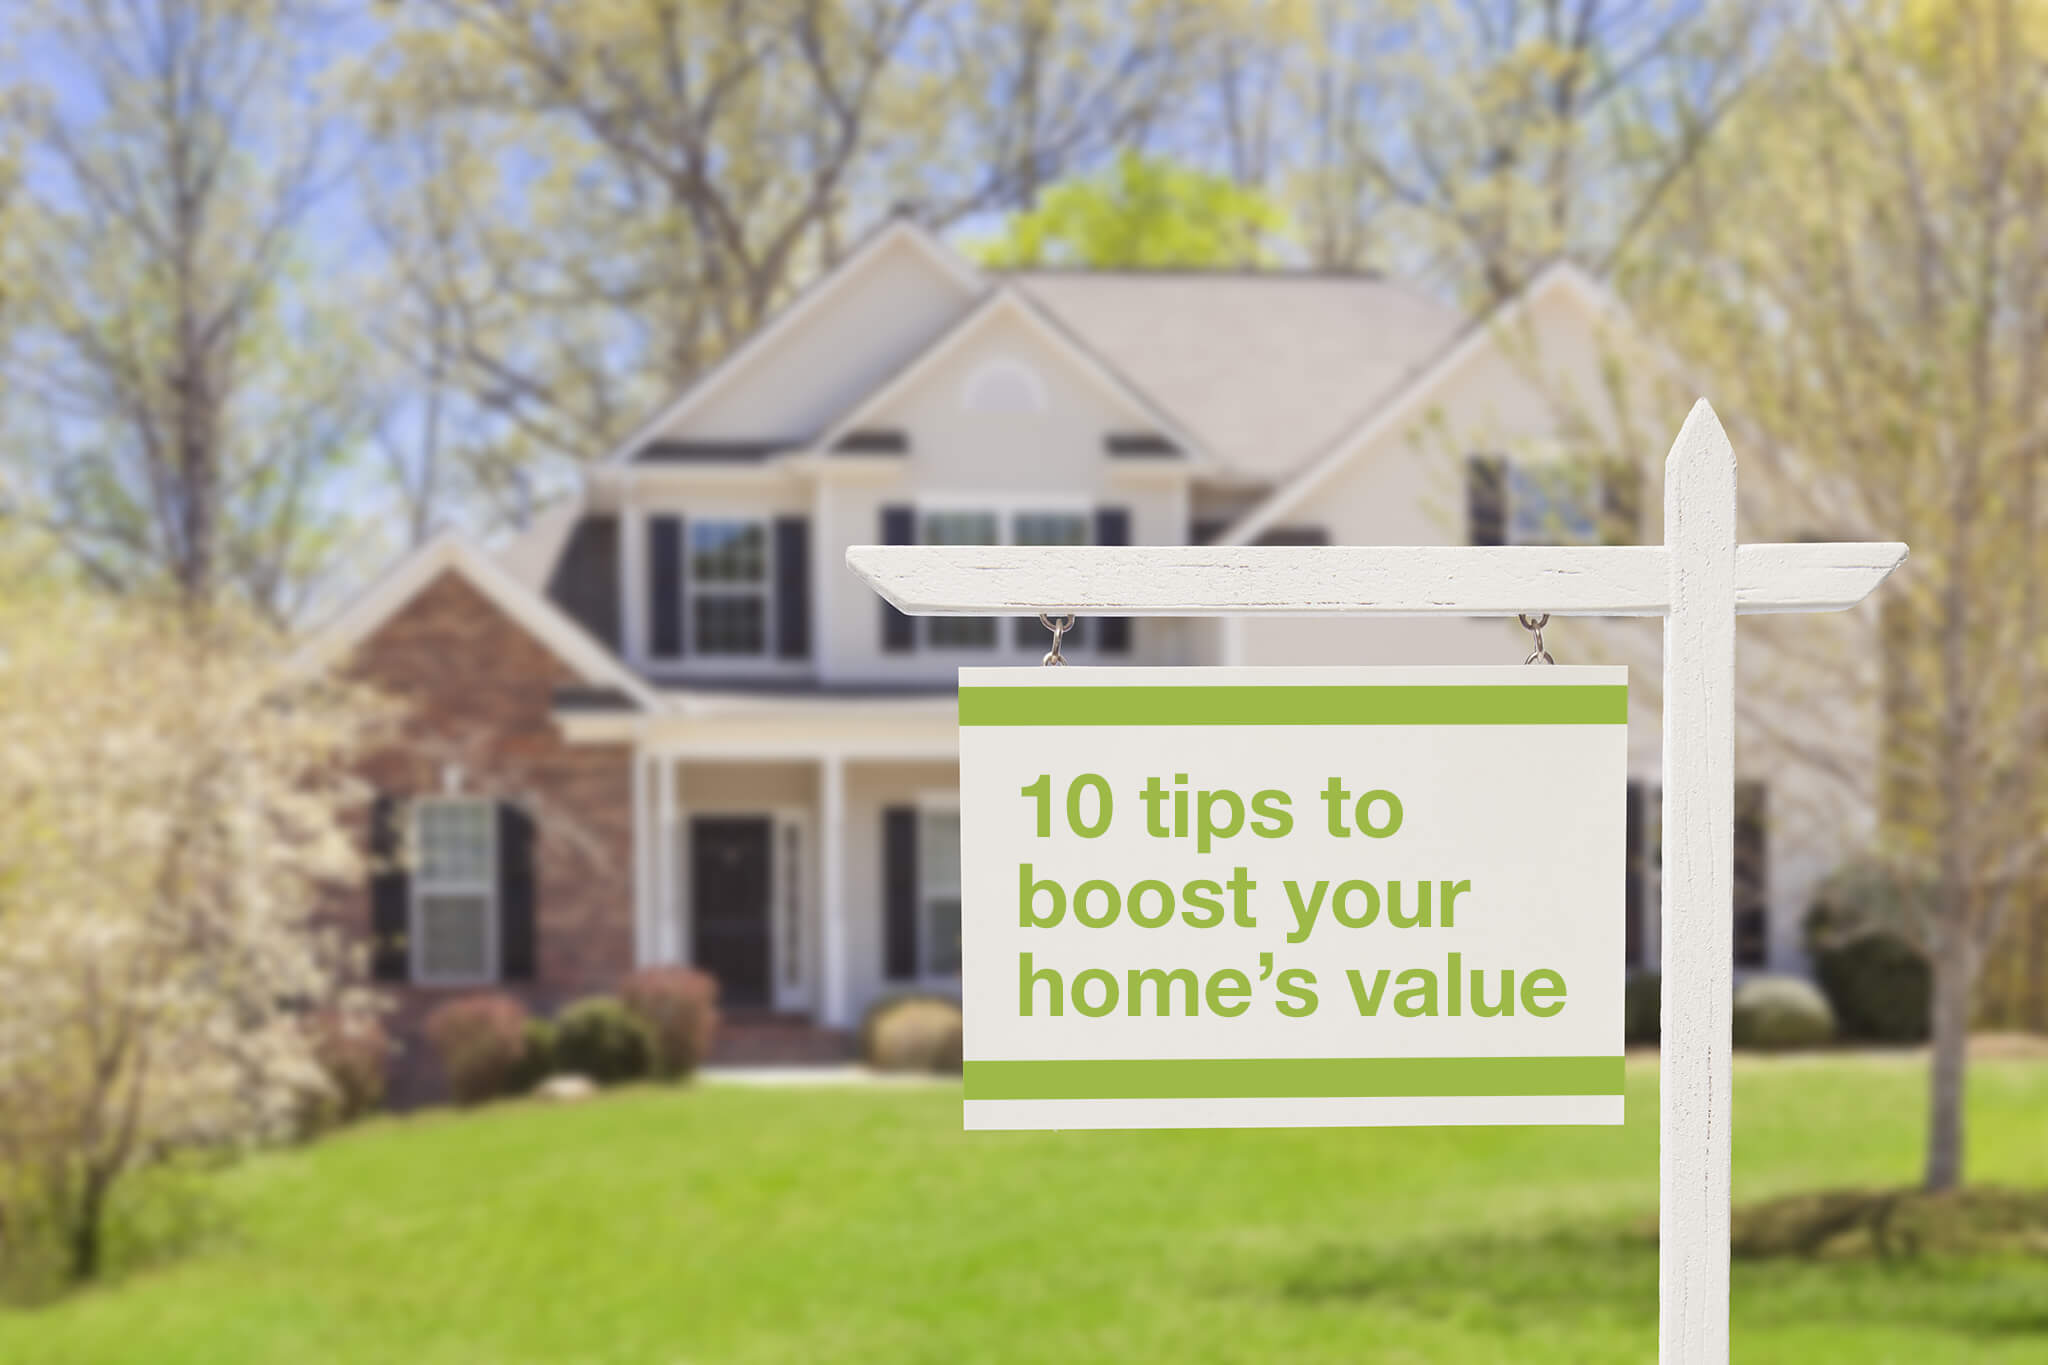 This Is the Number One Way to Boost Your Home's Value, According to Experts